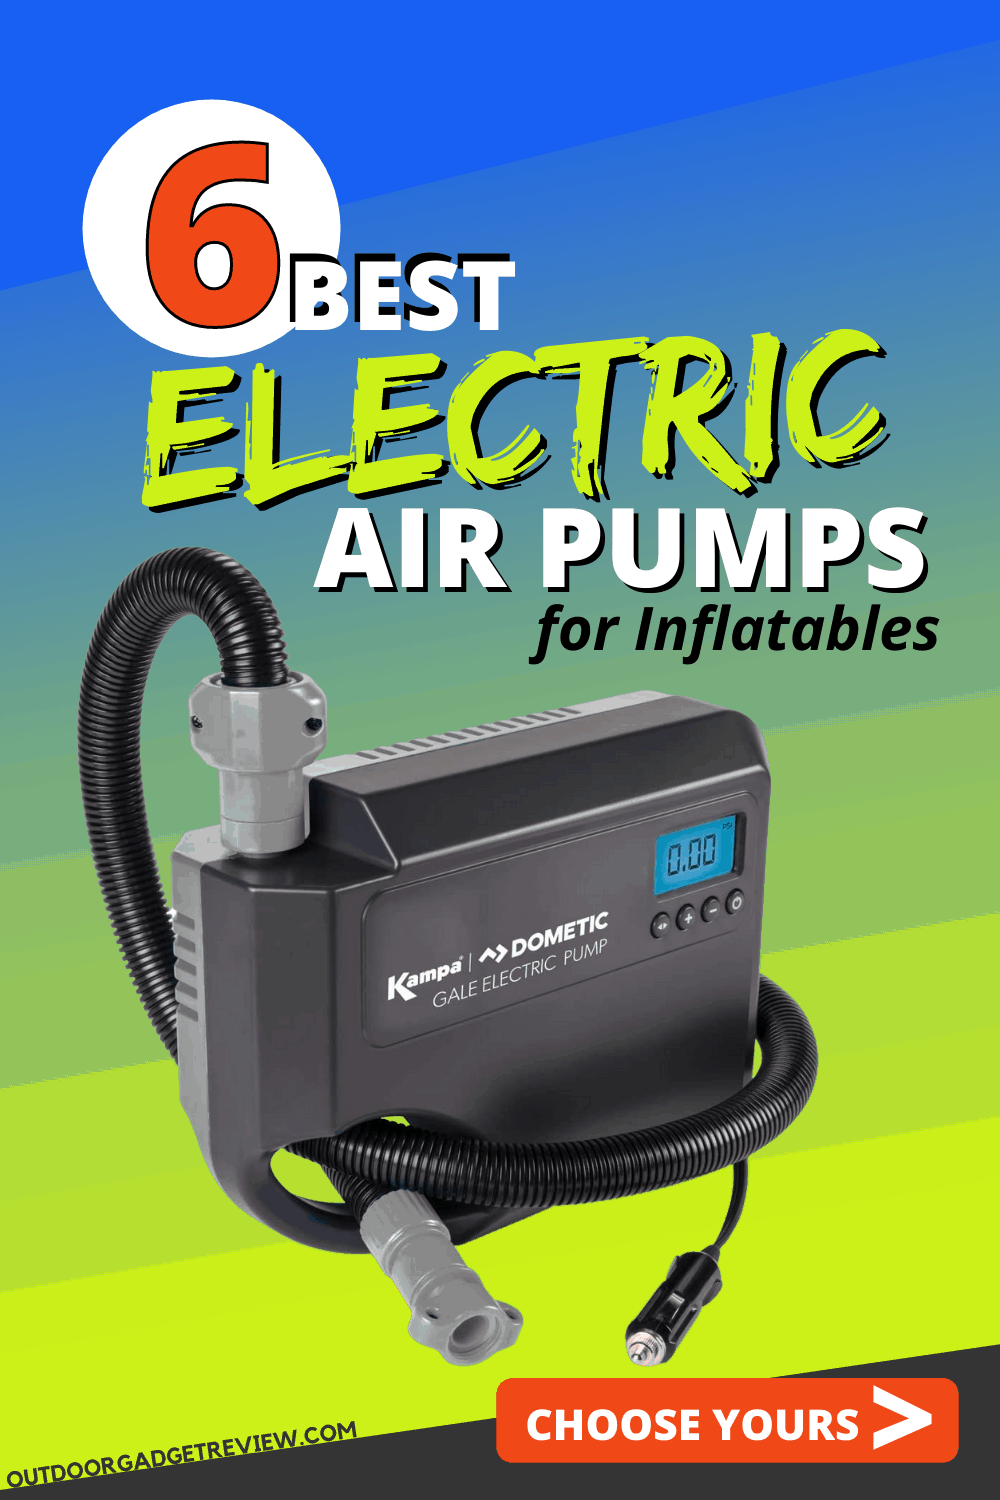 6 Best Electric Air Pumps of 2021